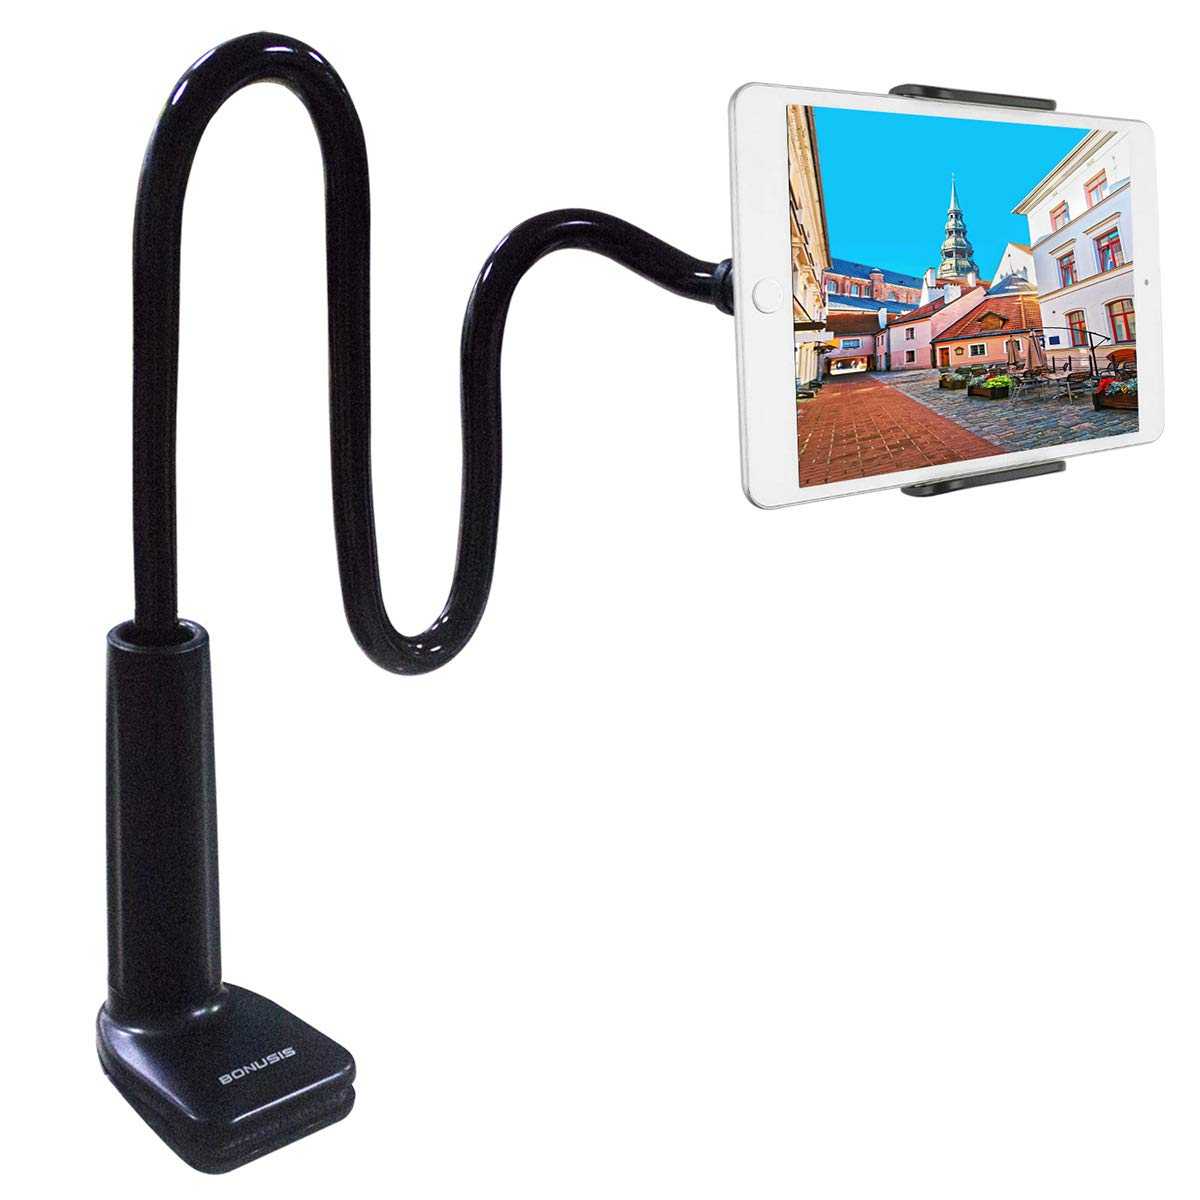 Tablet Holder, BONUSIS Cell Phone Holder Gooseneck Tablet Stand Holder Cellphone Stand Bolt Clamp with Bracket for Android Devices 4-10.6 Inches 360 Degree Rotating 27.5 Inches Flexible Arm [Black]